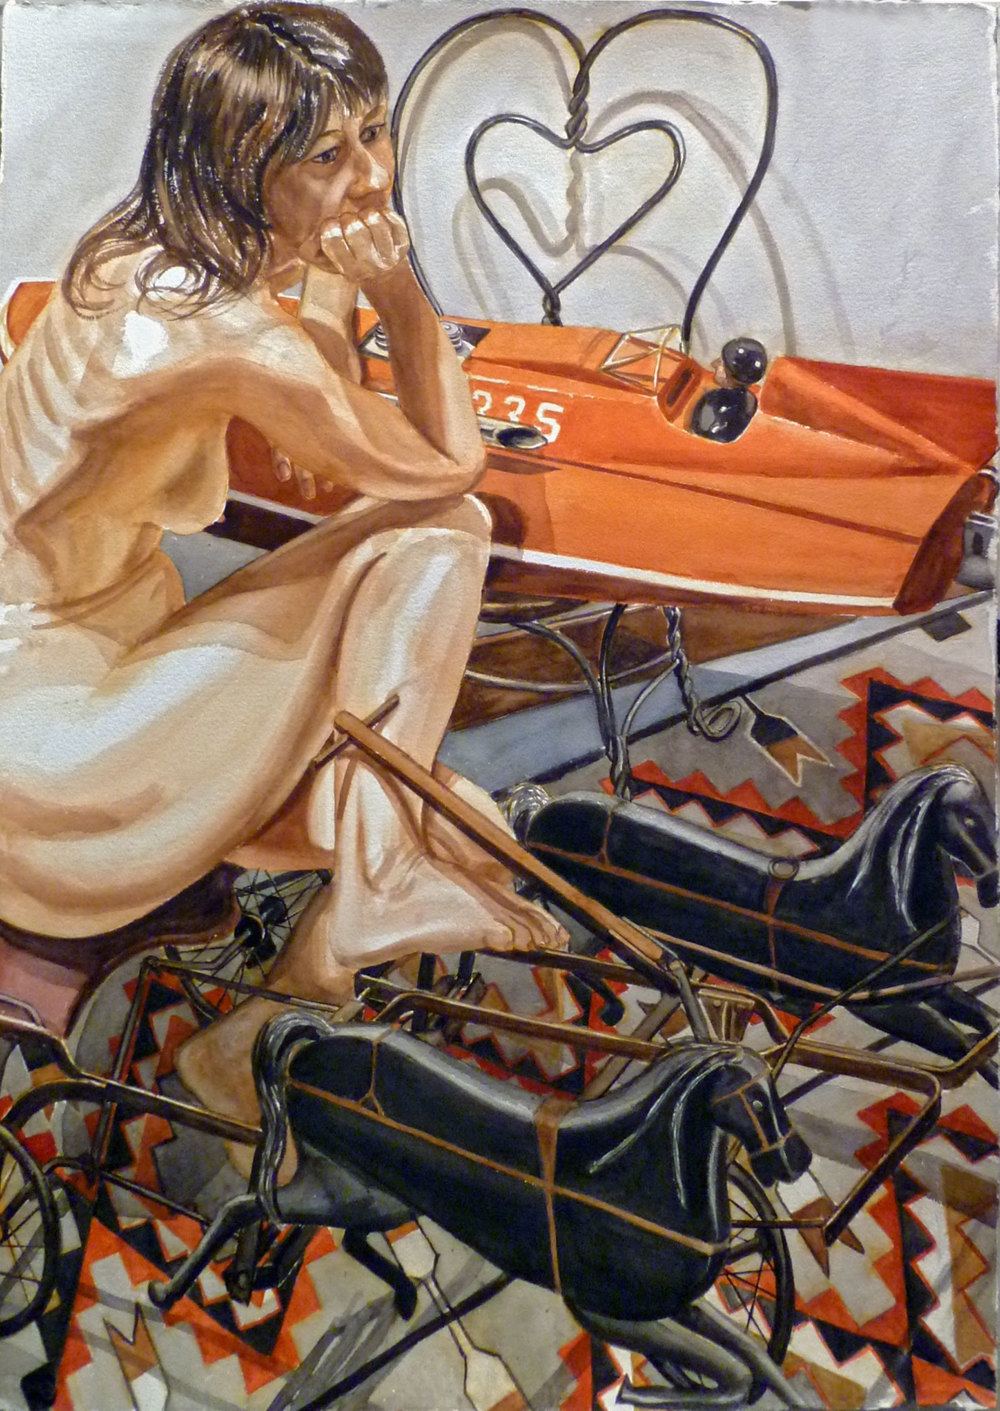 Model with Speedboat and Kiddie Car Harness Racer , 2010 Watercolor on paper 29 x 41 inches